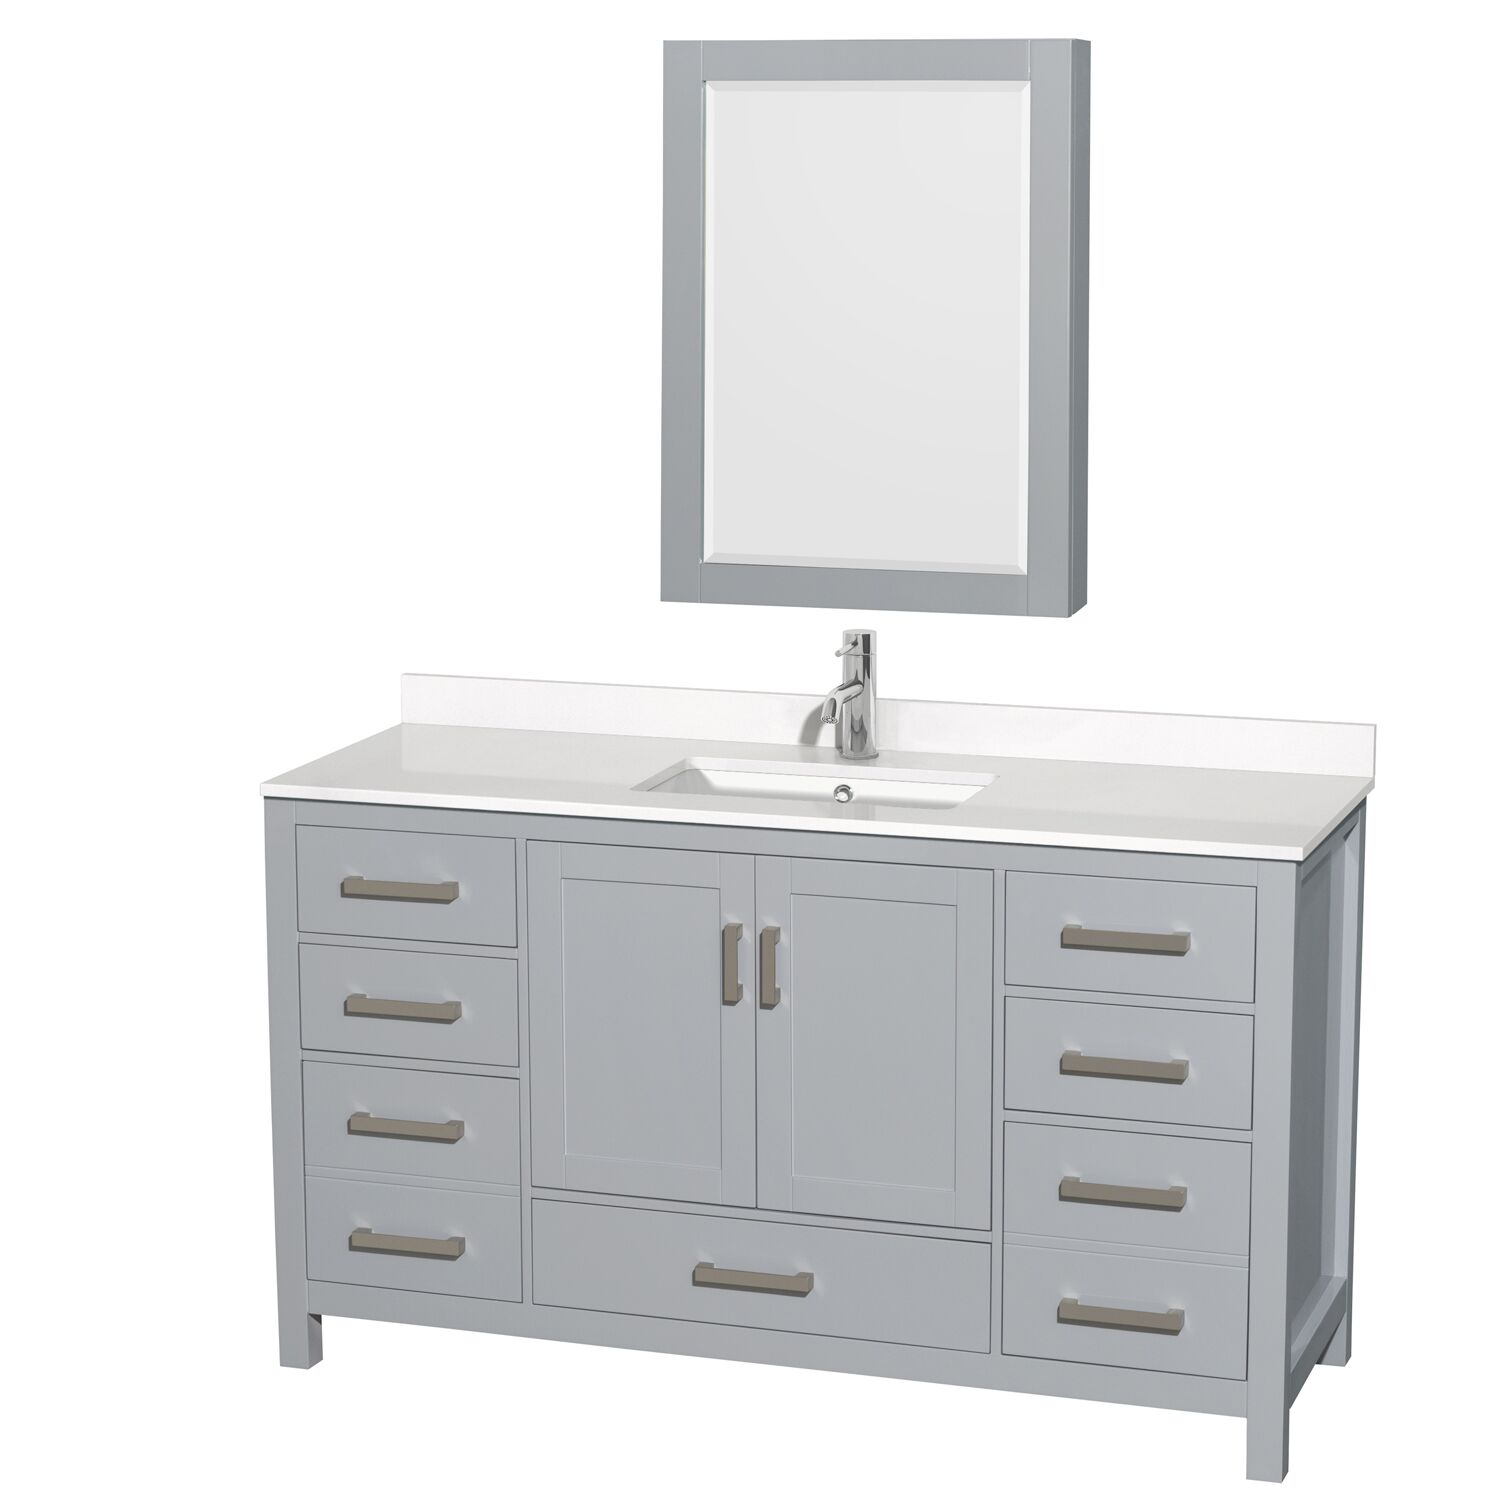 "60"" Single Bathroom Vanity with Color, Countertop, Mirror and Medicine Cabinet Options"